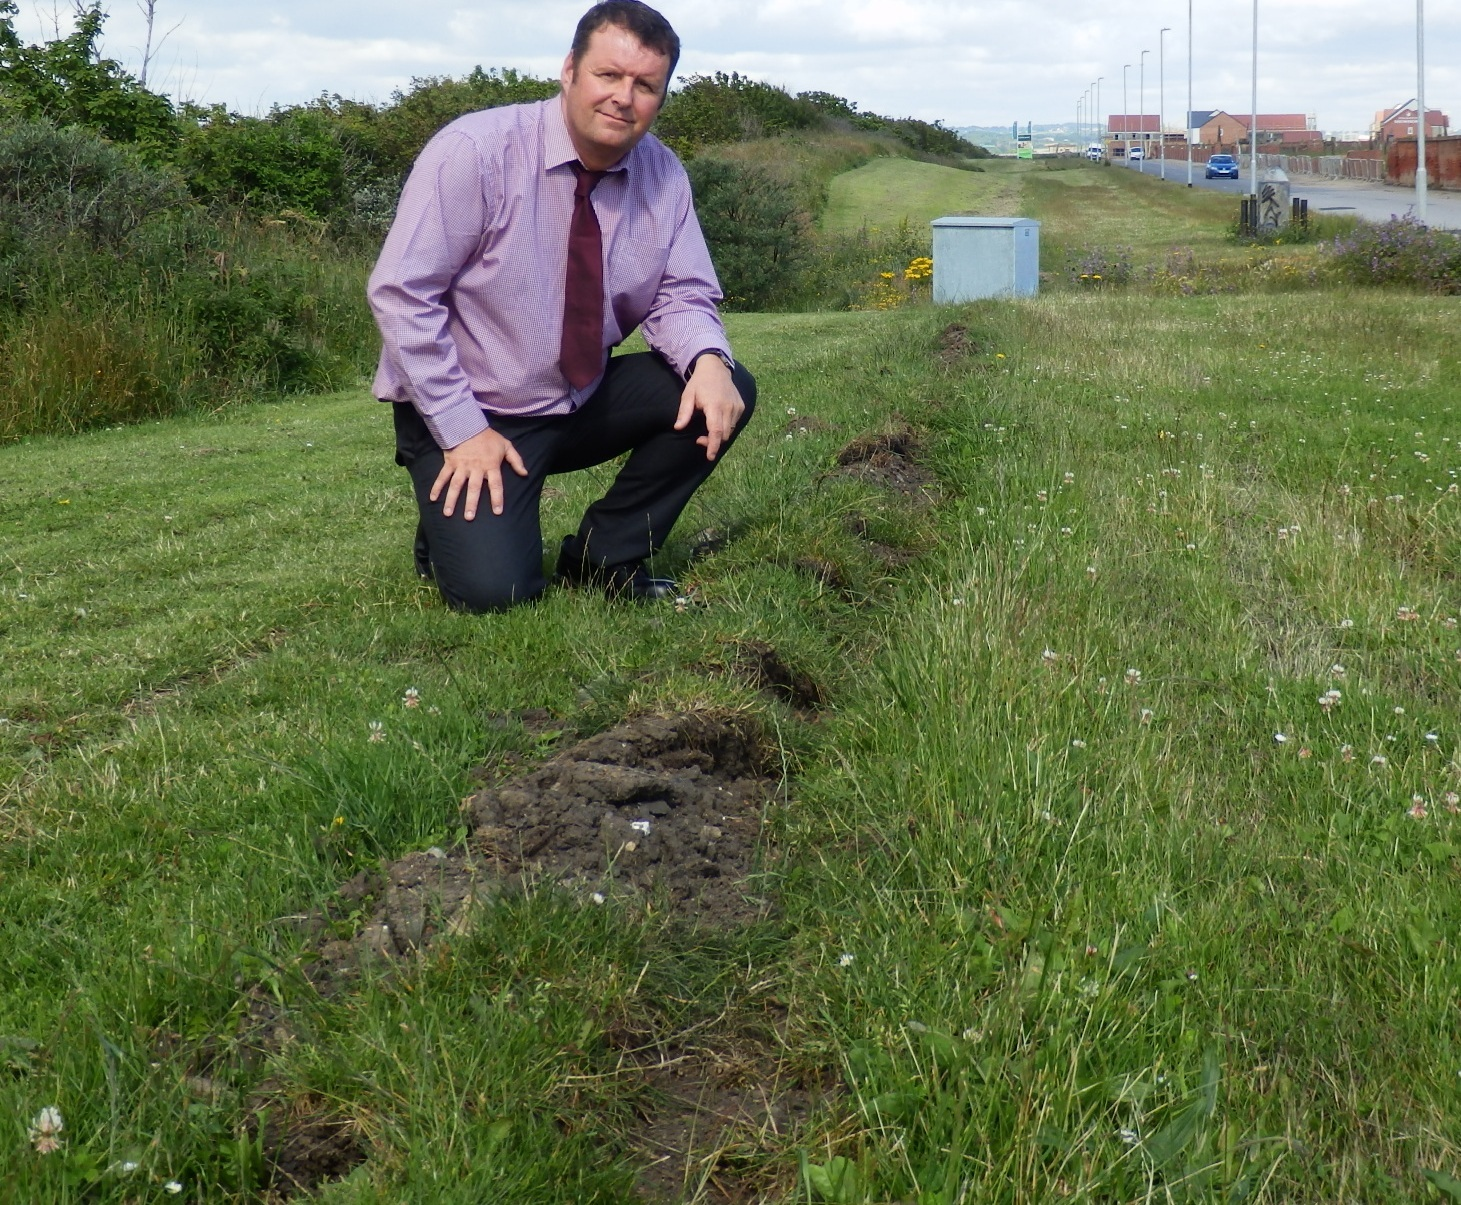 Hartlepool Council's public lighting officer Rob Daley shows where the cable was dragged out of the ground, with the damaged control box in the background